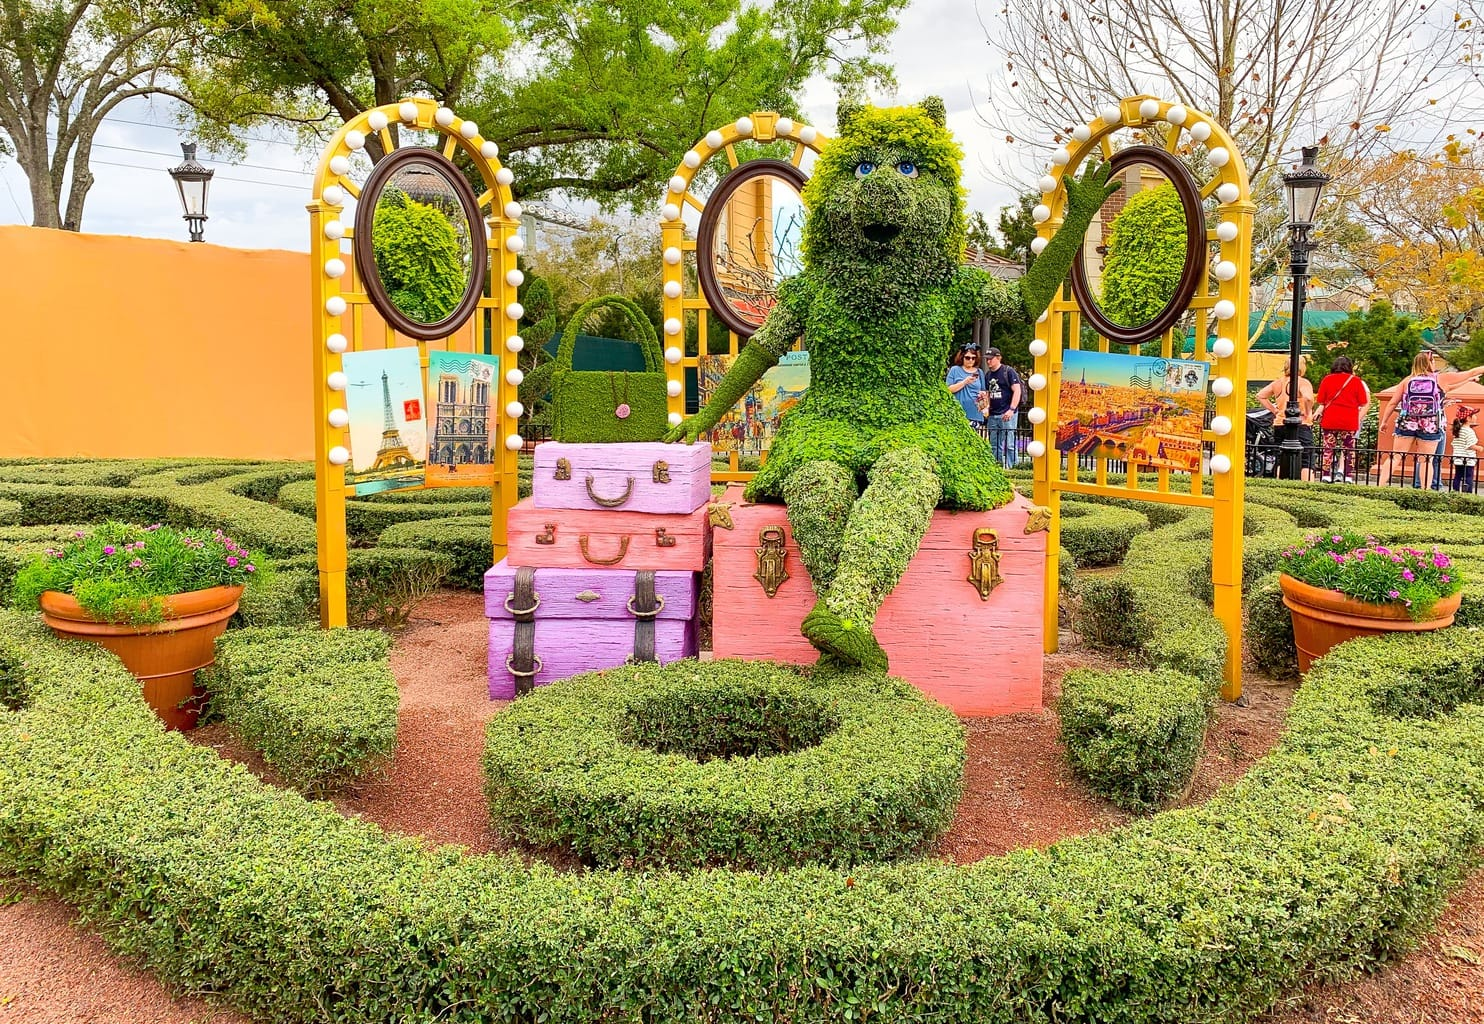 2019 epcot flower and garden festival overview - kim and carrie